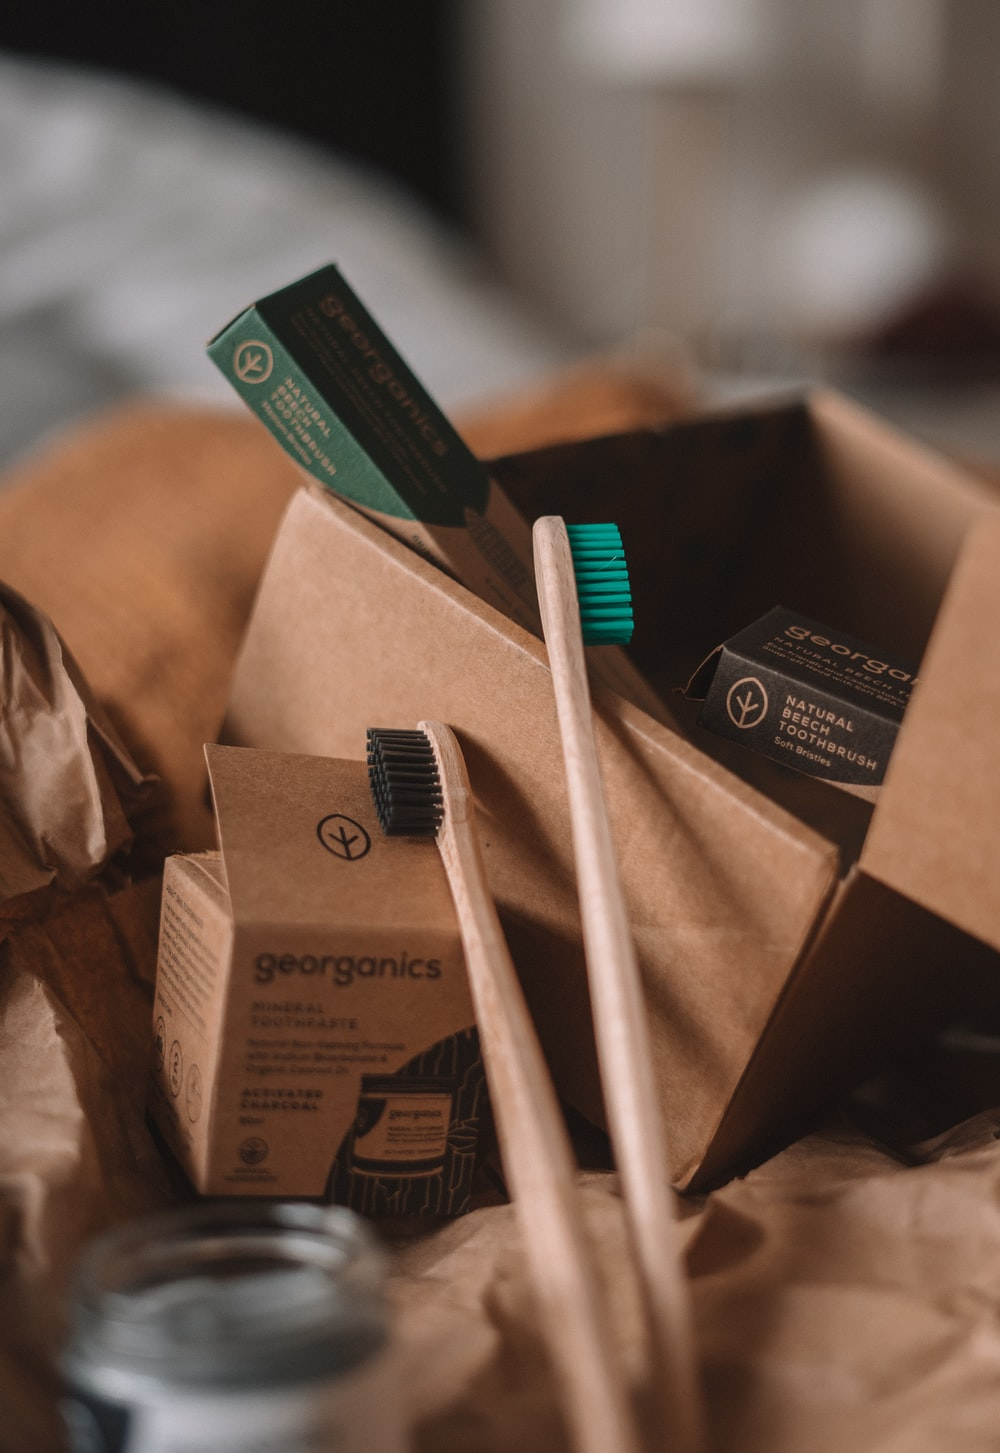 green and white toothbrush on brown carton box